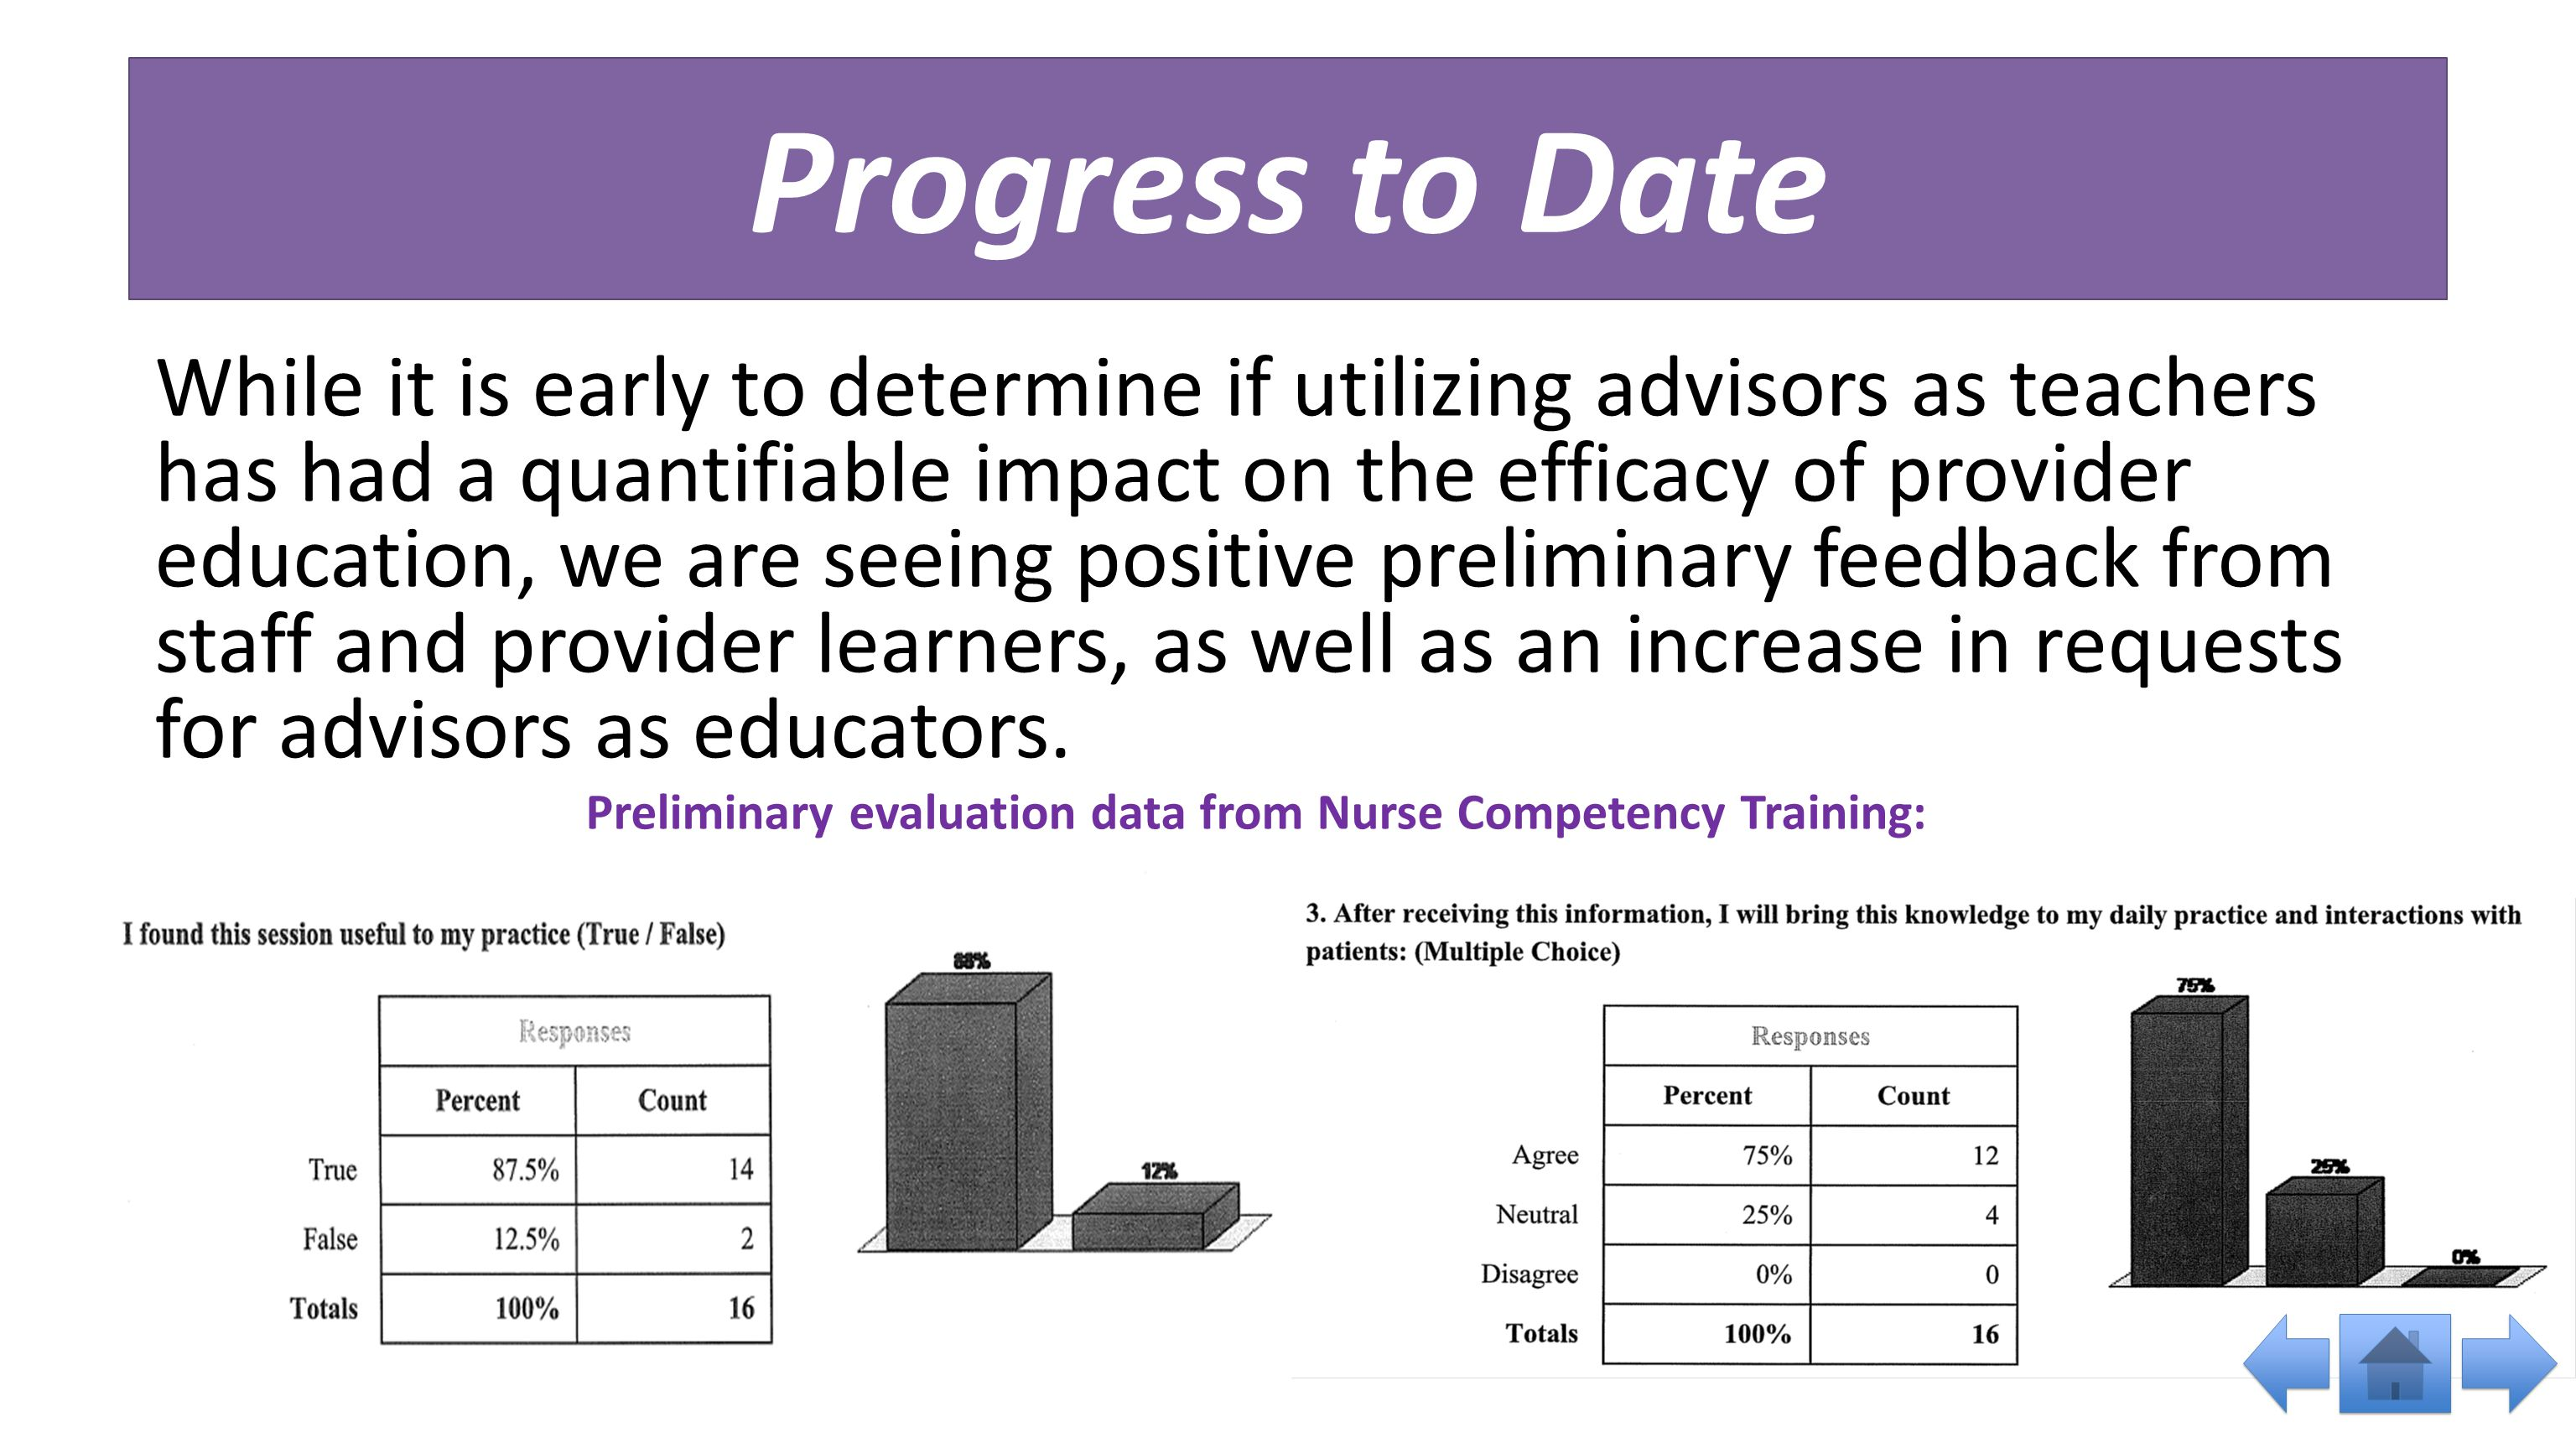 Progress to Date While it is early to determine if utilizing advisors as teachers has had a quantifiable impact on the efficacy of provider education, we are seeing positive preliminary feedback from staff and provider learners, as well as an increase in requests for advisors as educators.